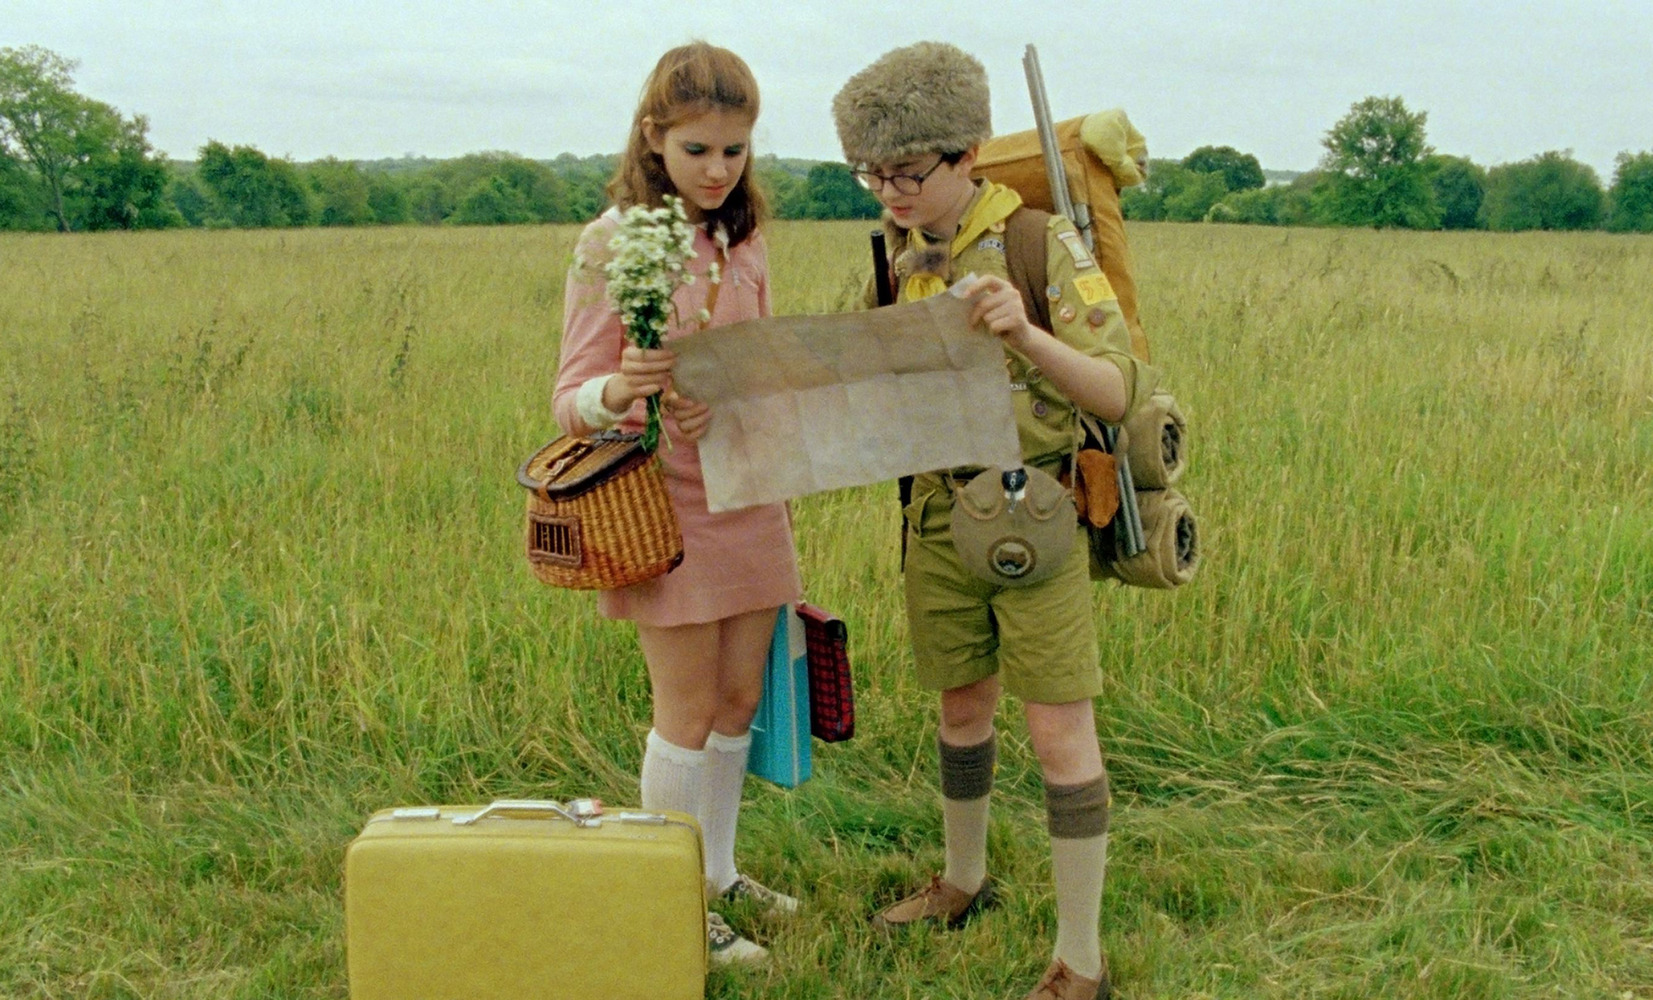 Doob picture young pamela anderson - Movie Fans Can Find The Underrated Moonrise Kingdom In Hudson River Park On July 31